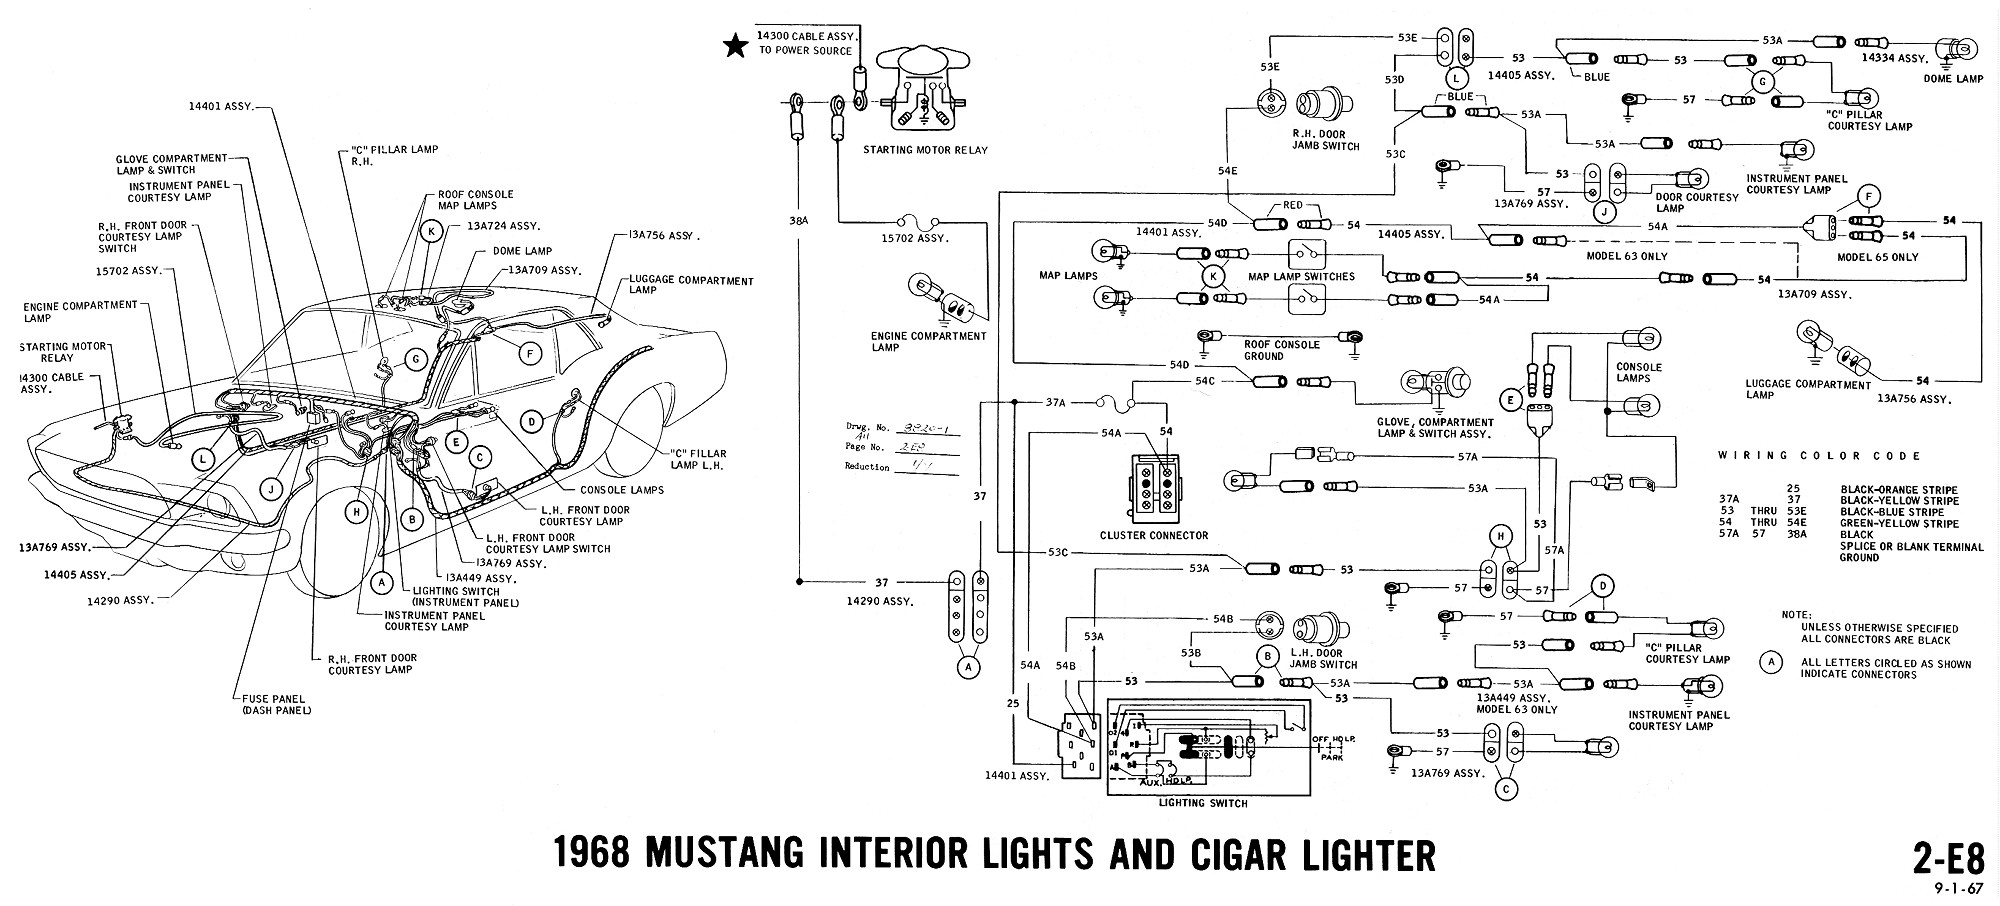 1968 mustang wiring diagram interior lights cigar lighter 1968 mustang wiring diagrams and vacuum schematics average joe mustang wiring harness diagram at aneh.co